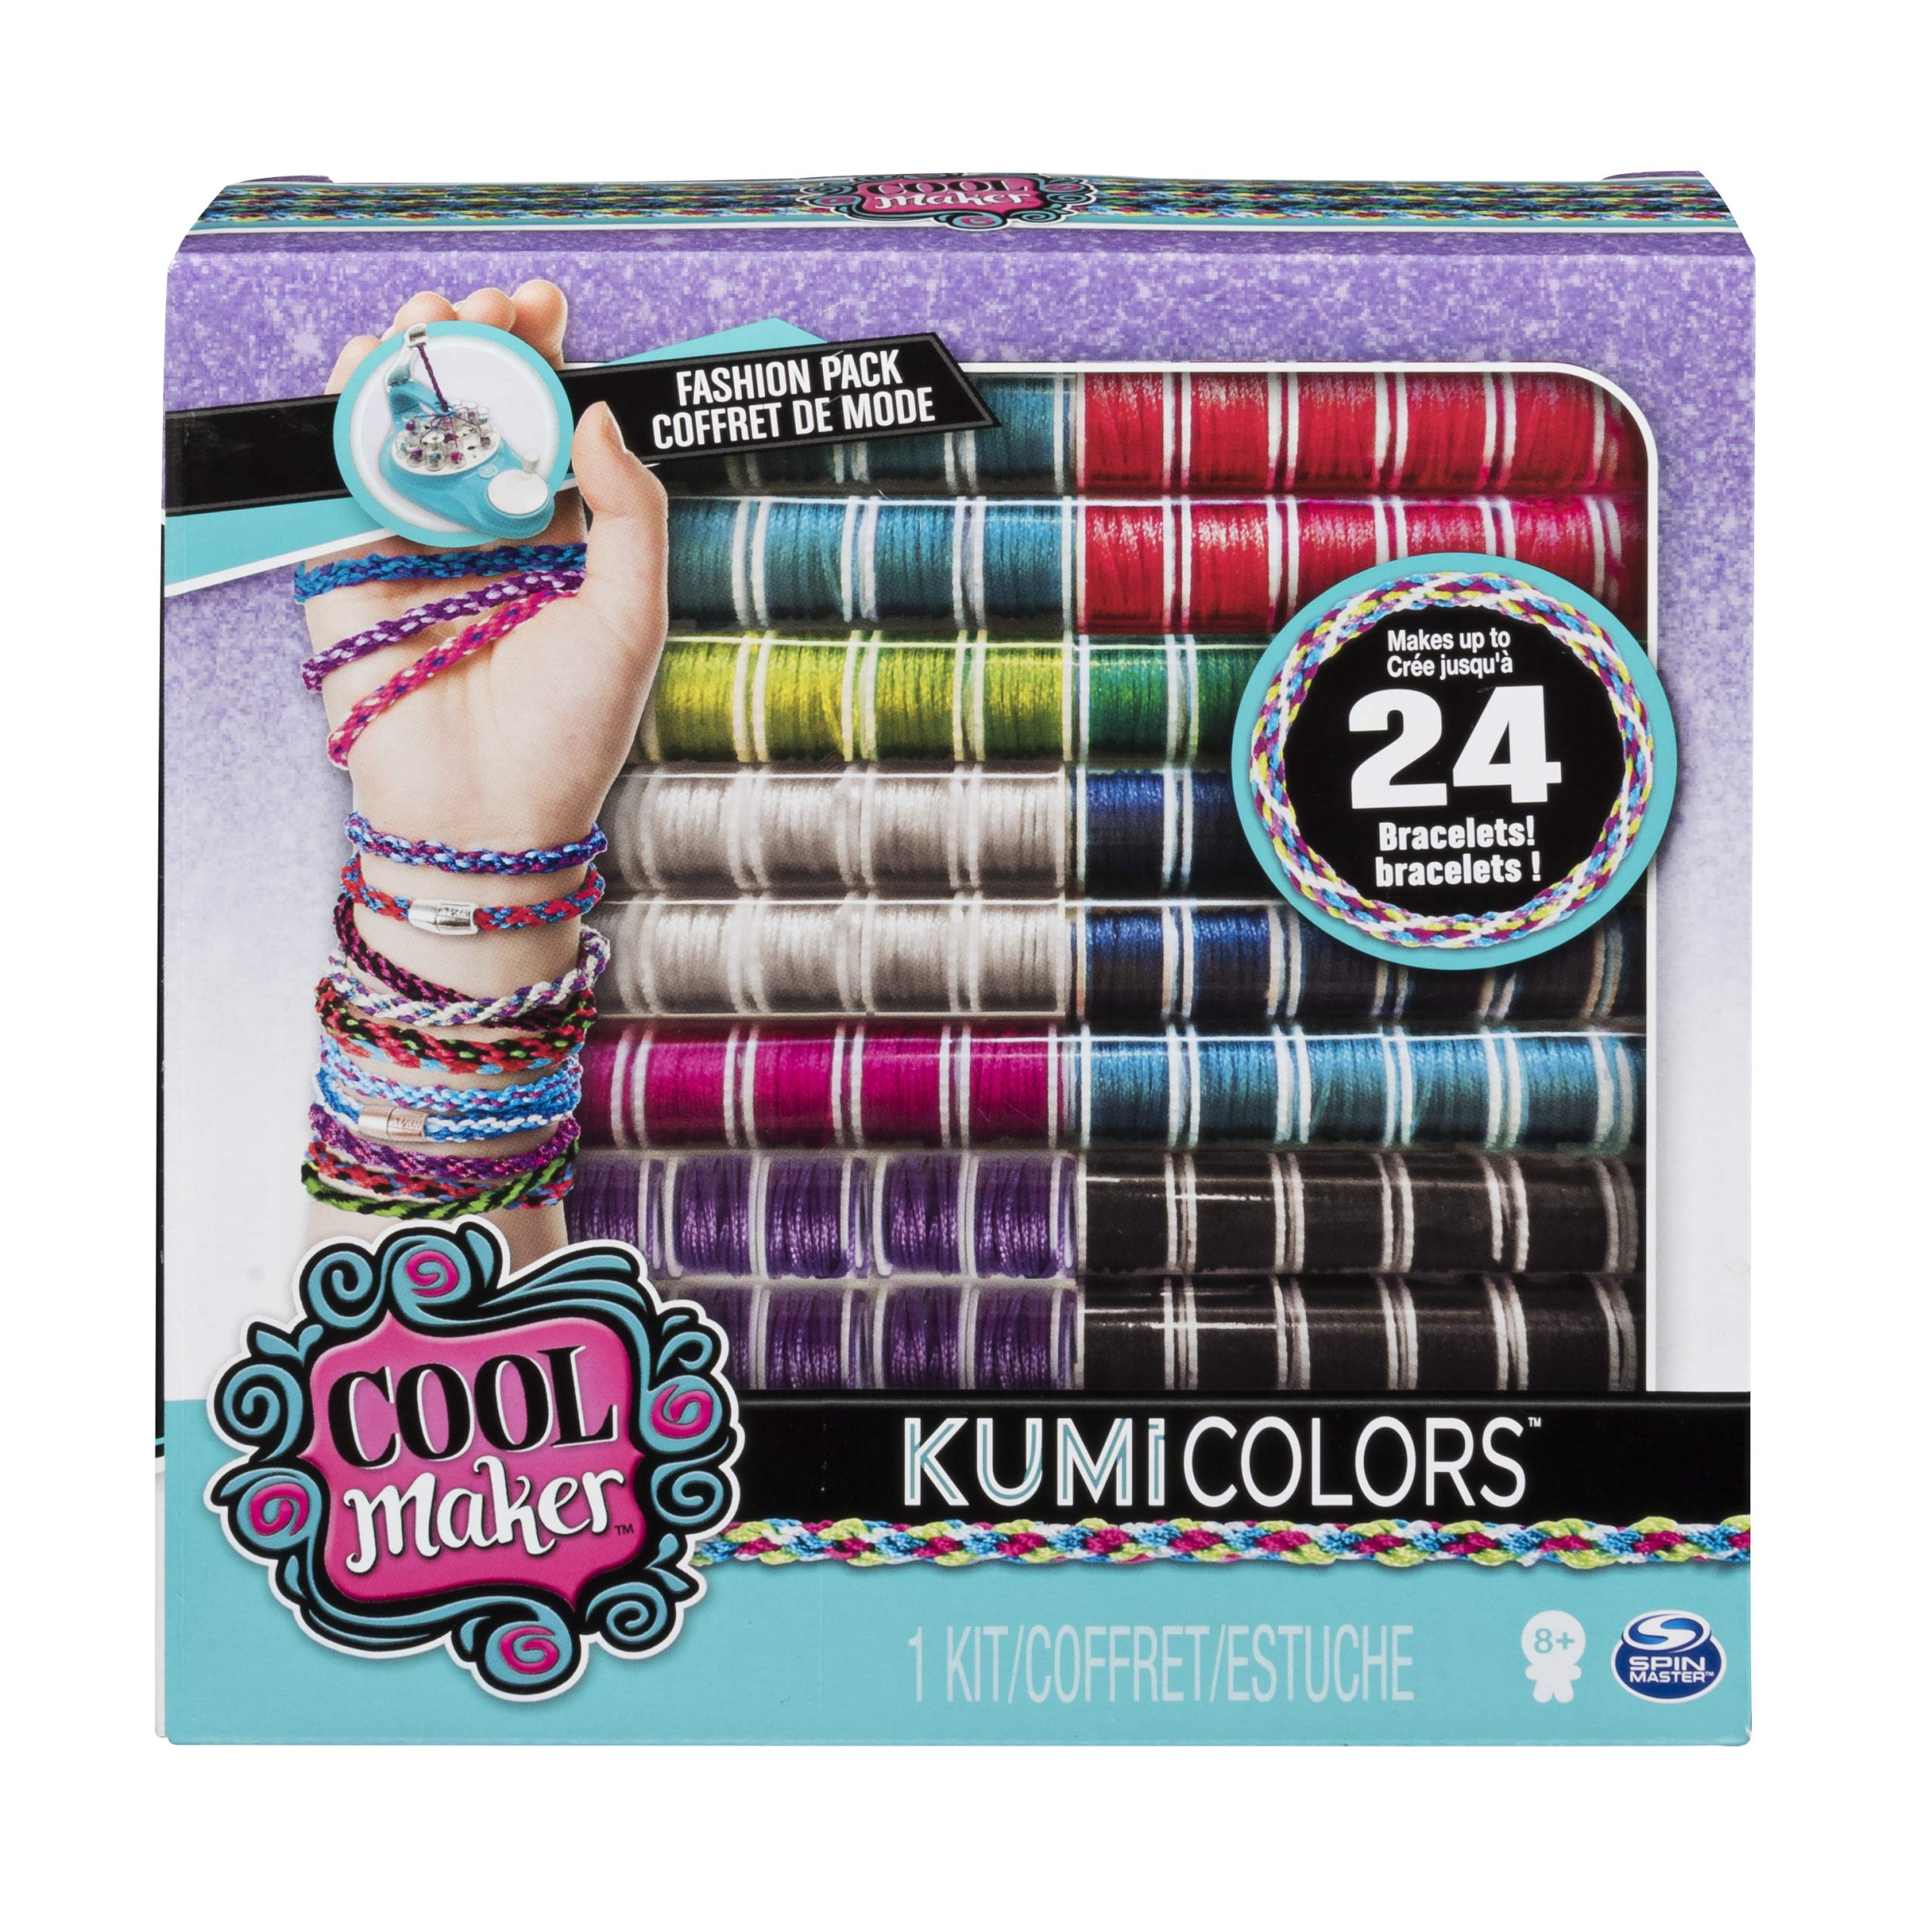 Cool Maker - KumiColors Jewels & Cools Fashion Pack, Makes Up to 24 Bracelets with the KumiKreator, for Ages 8 and Up